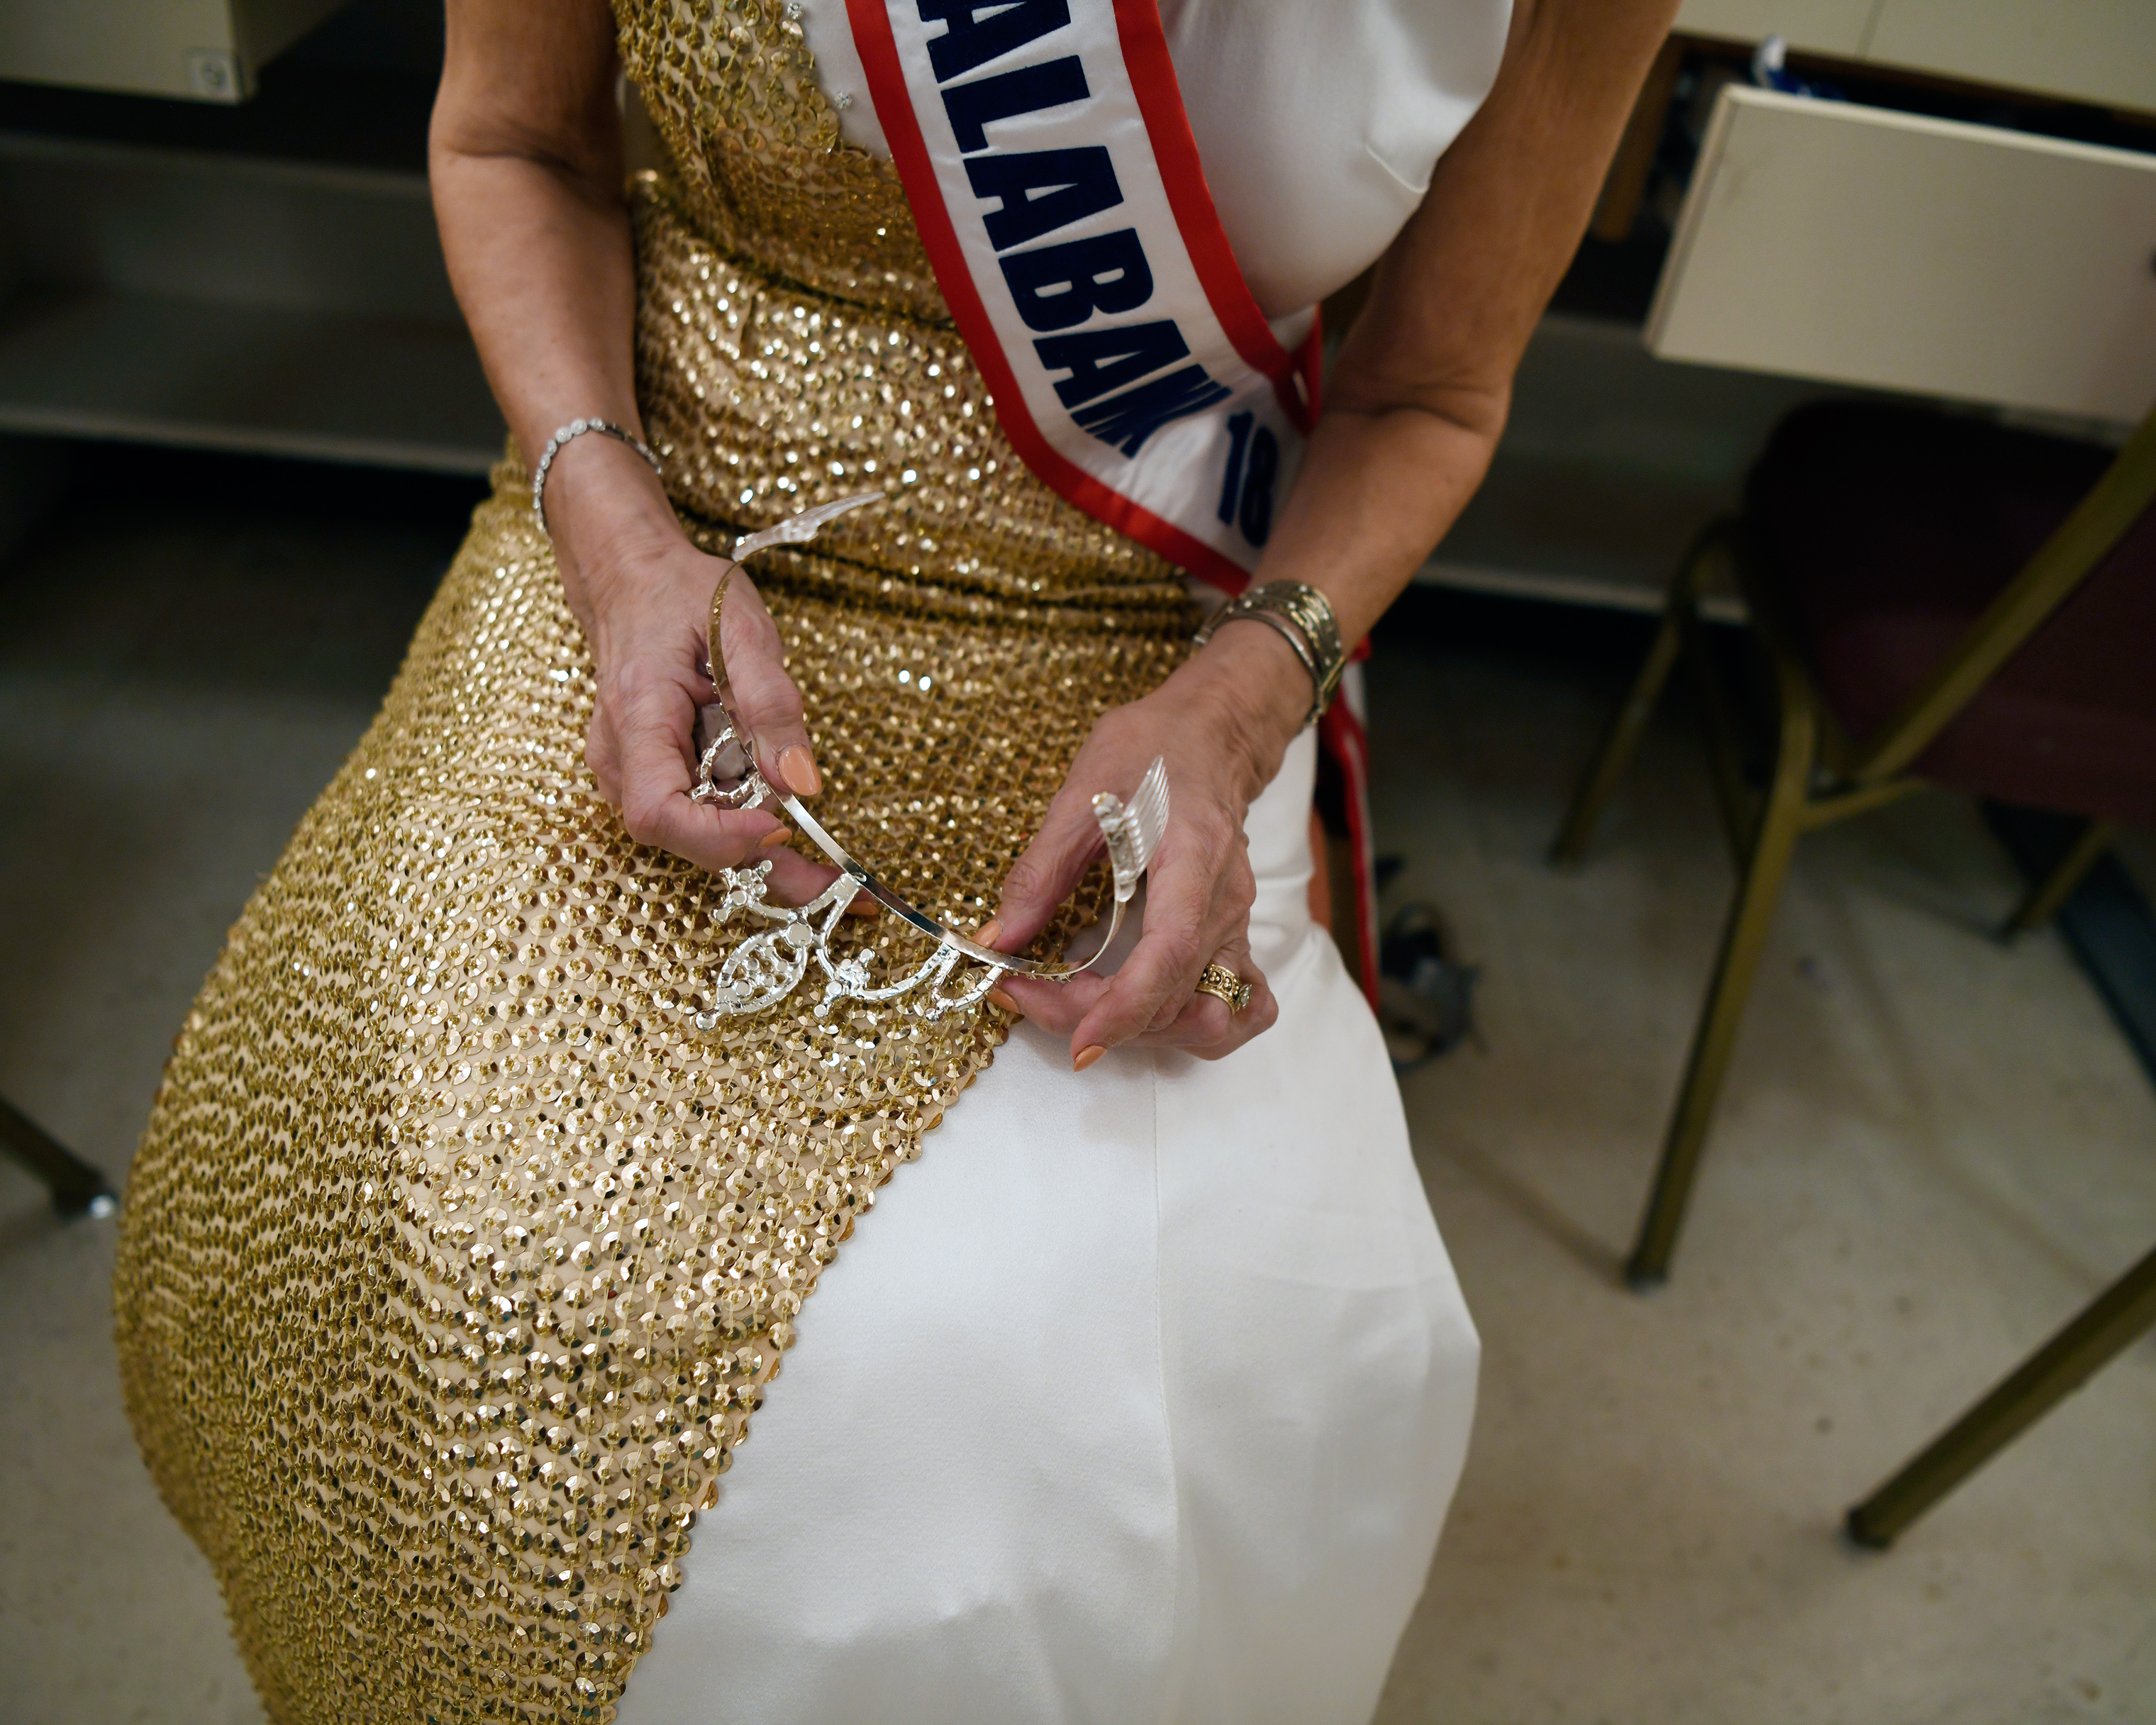 Georgia Lee, Ms. Alabama, holds her crown in the dressing room between pageant acts.